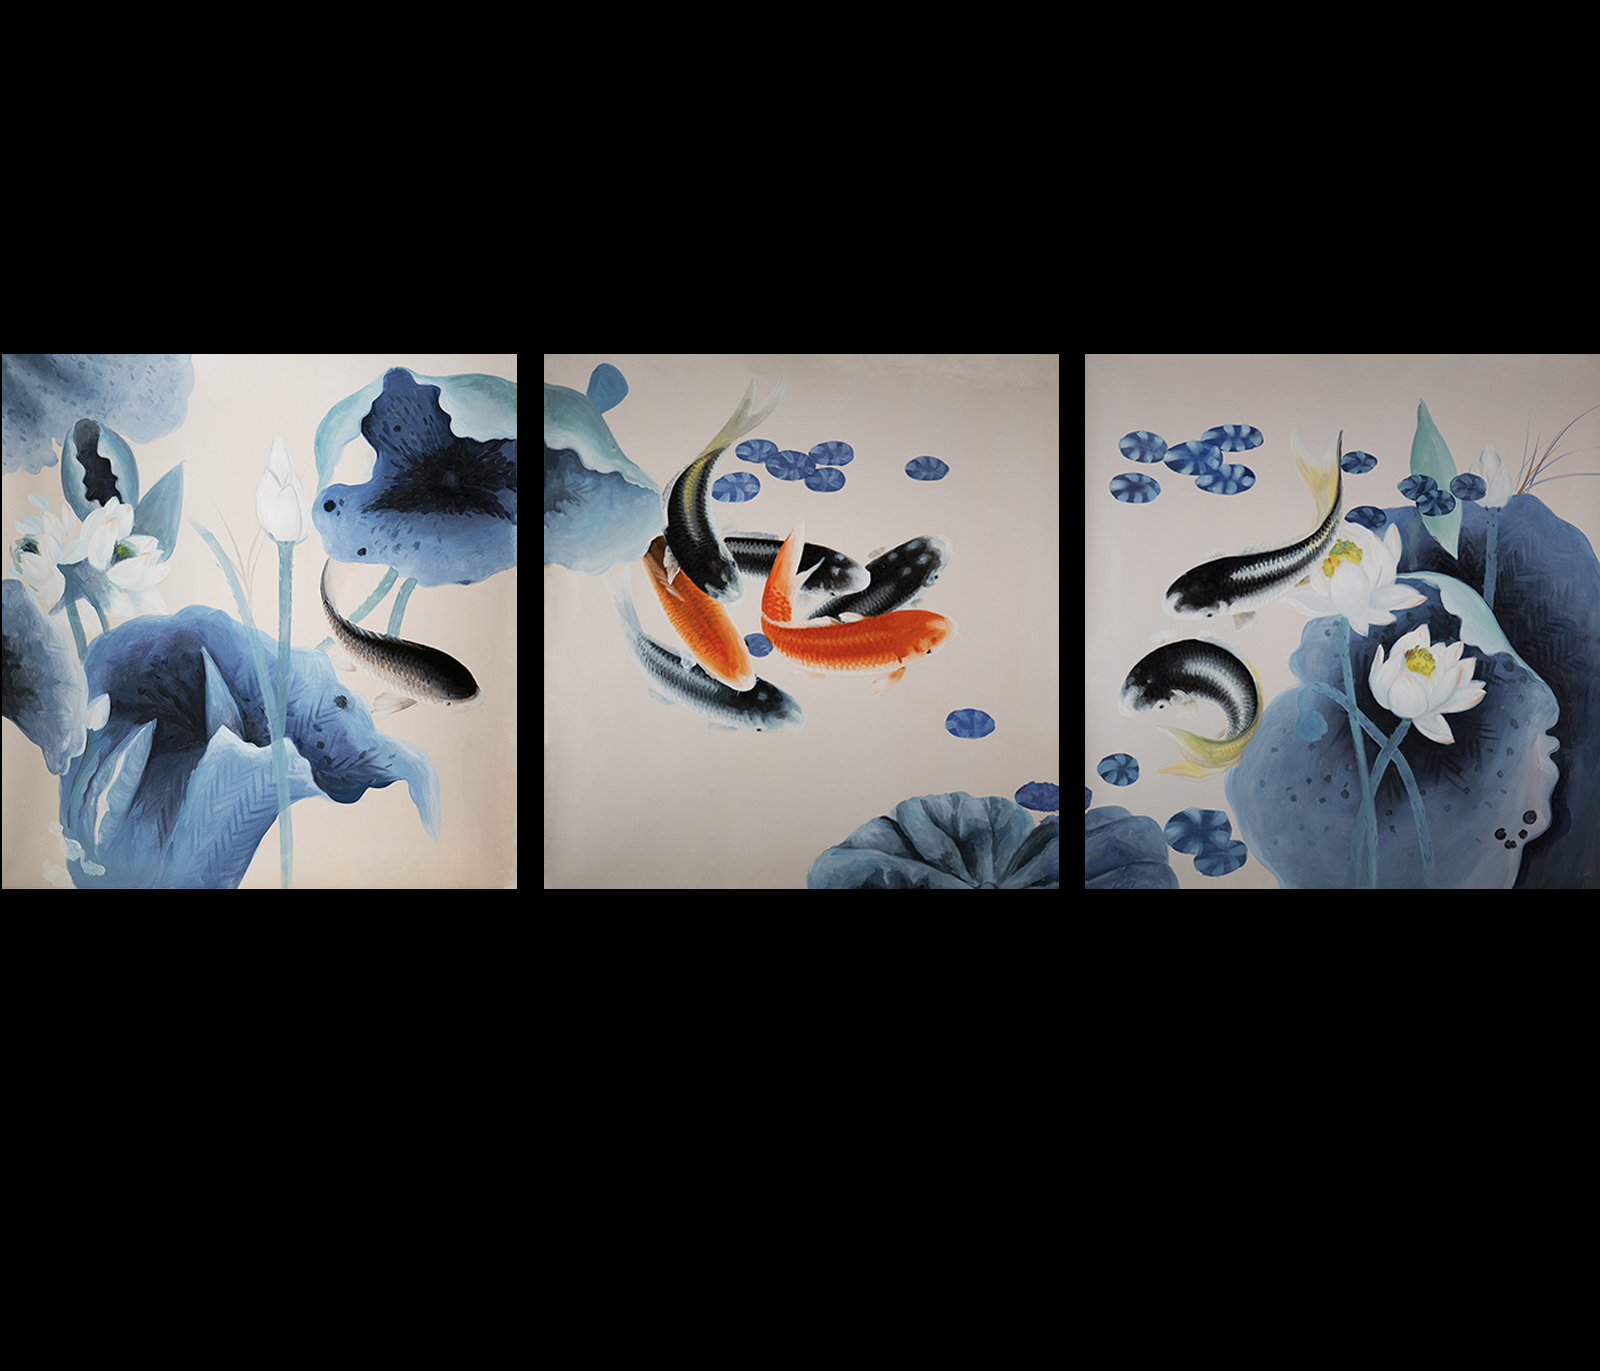 Koi fish painting contemporary art modern wall art d cor for Koi artwork on canvas